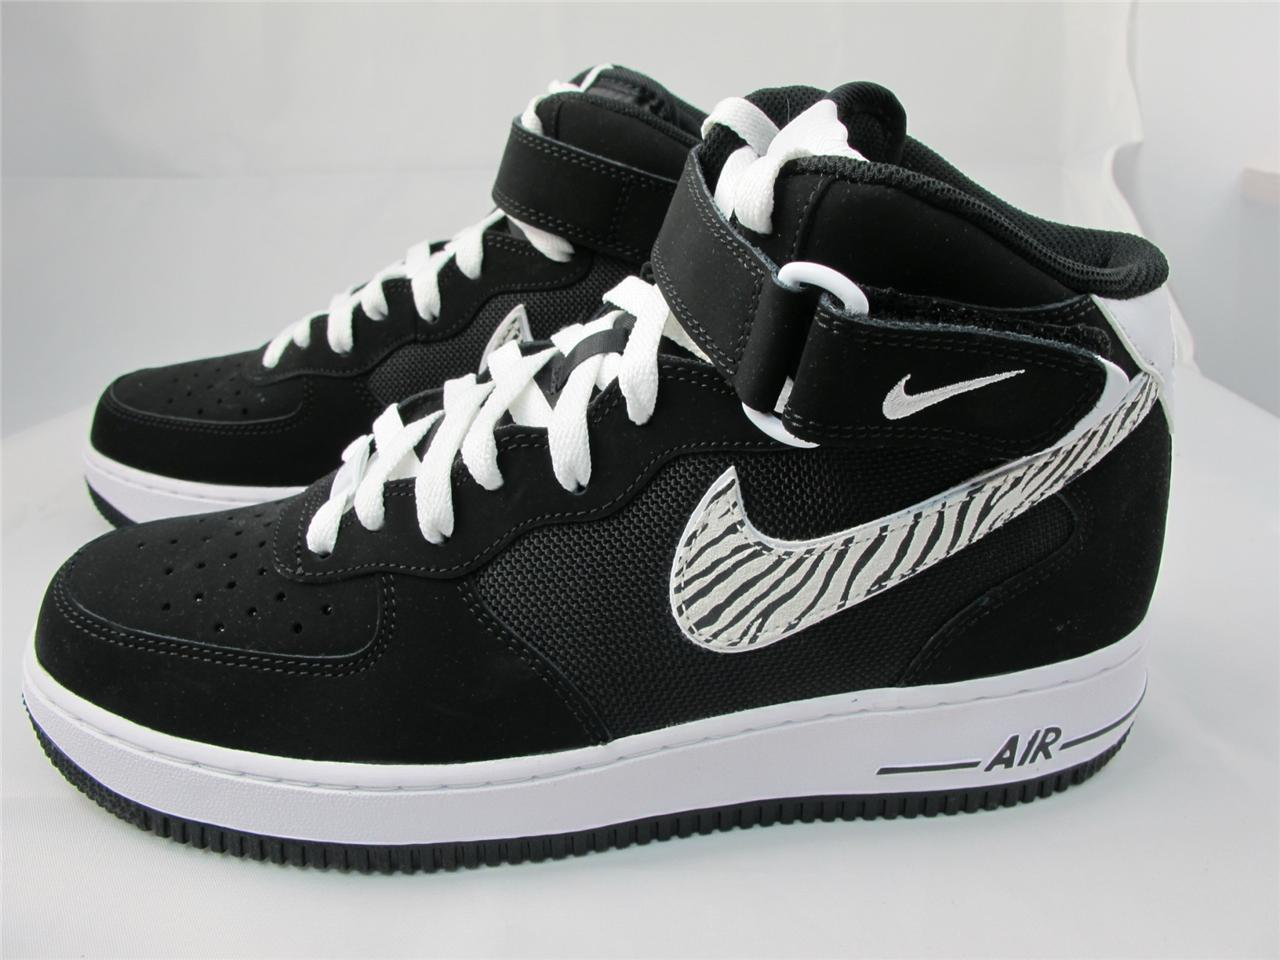 new men 39 s nike air force 1 mid 315123 017 black white ebay. Black Bedroom Furniture Sets. Home Design Ideas